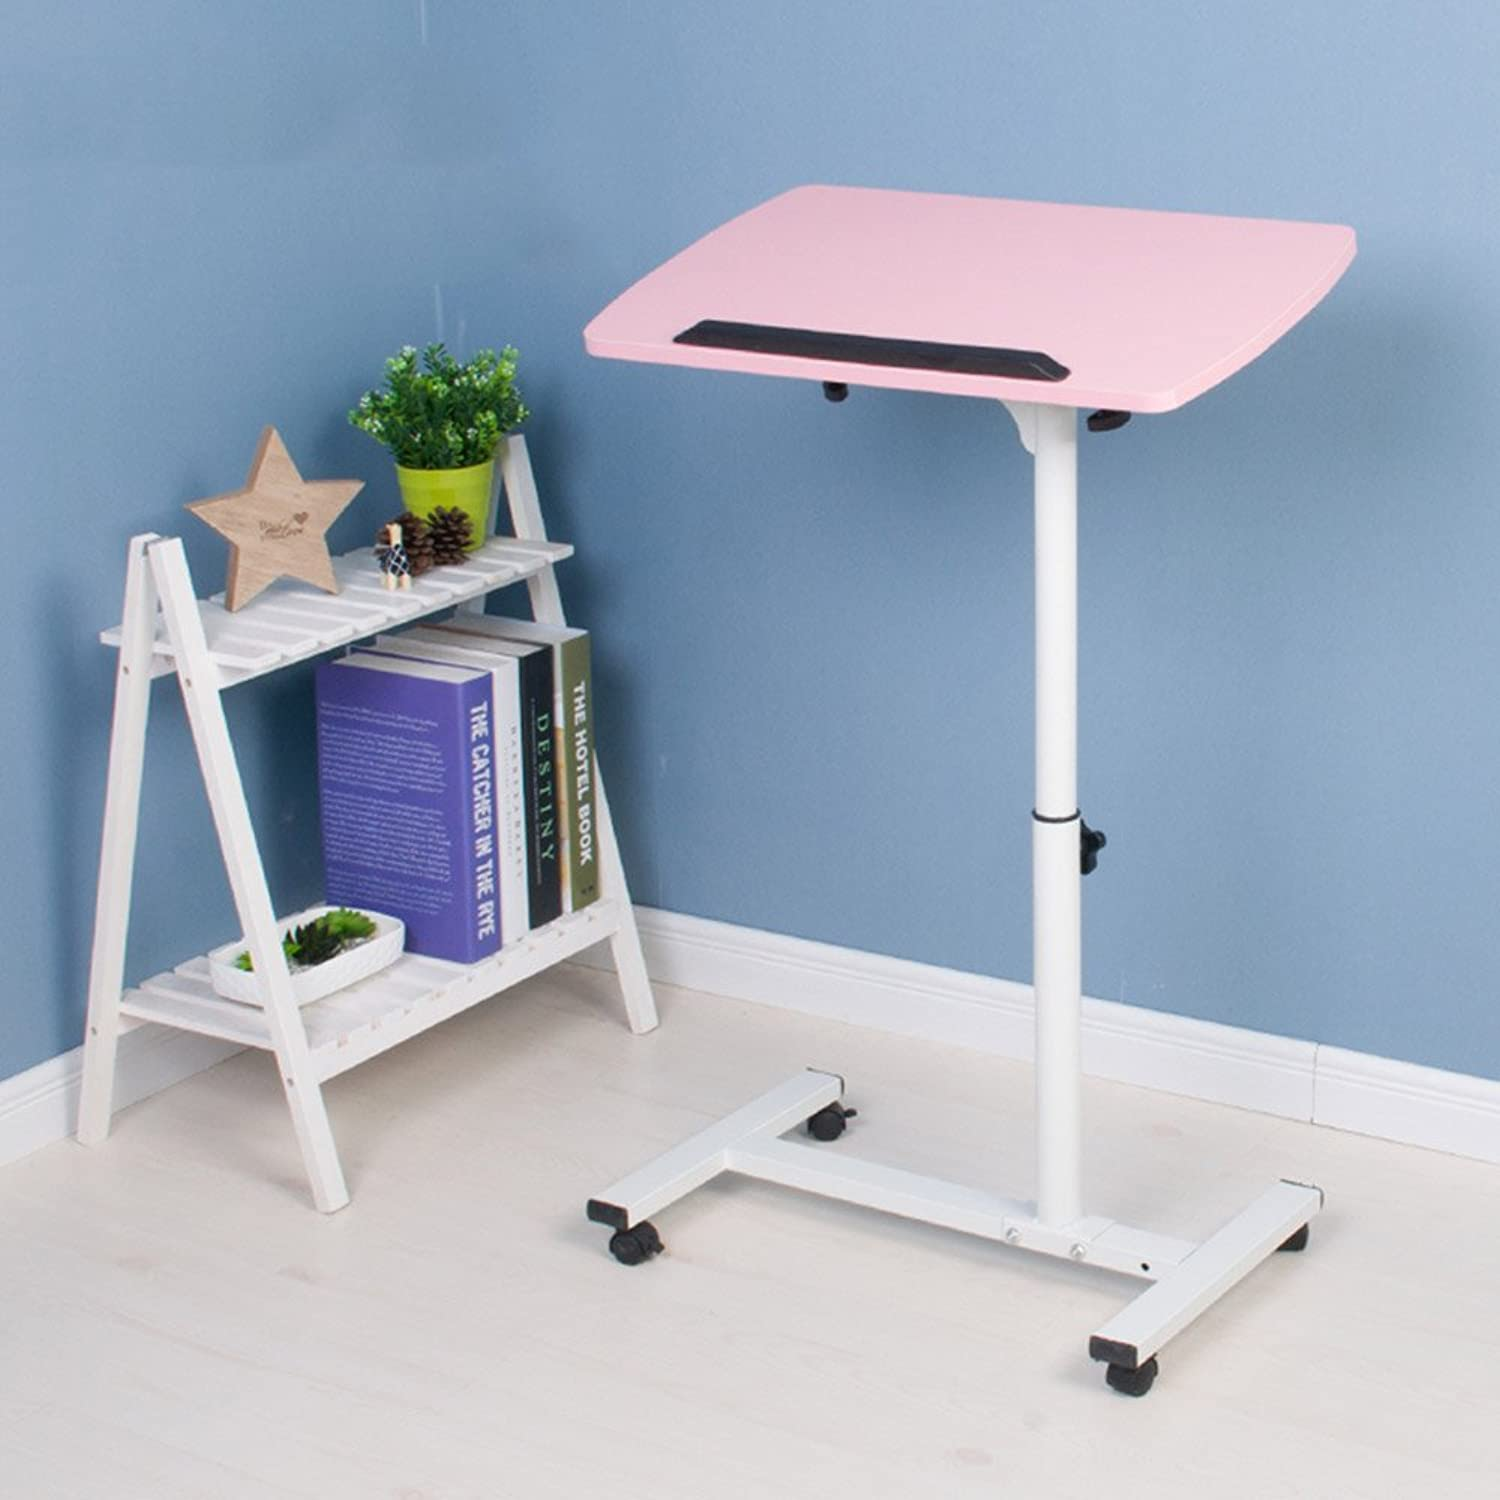 ZZ Folding Table Folding Table Lazy Laptop Desk Household Bed Small Desk 52  62cm (color   B)